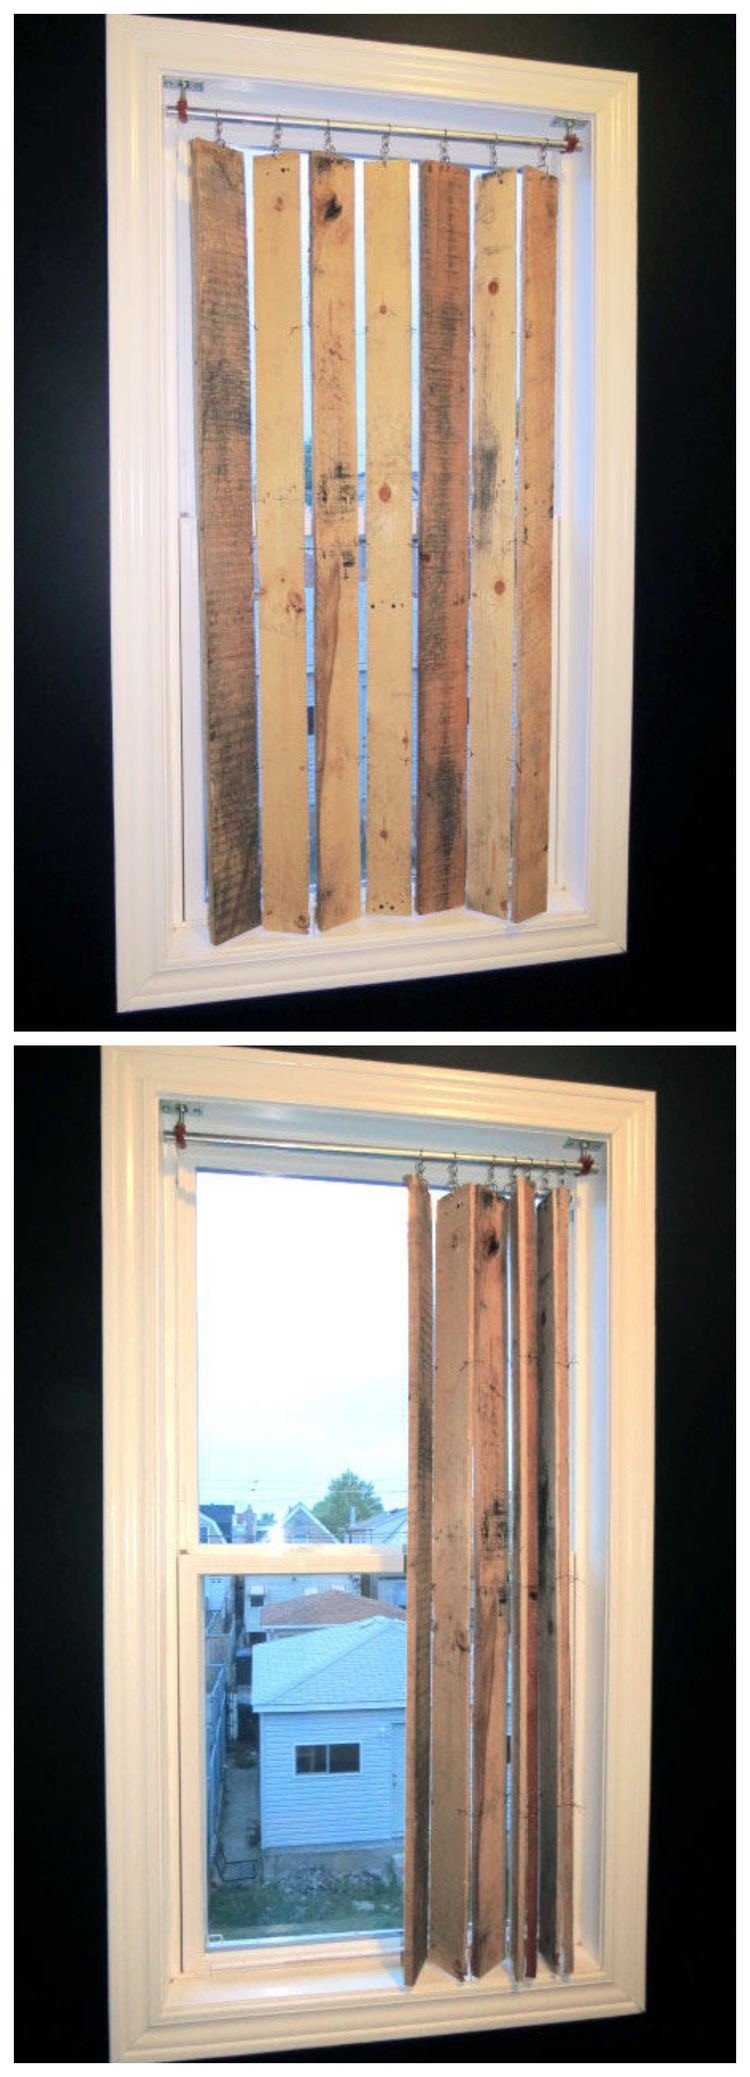 Wooden Pallet Blinds